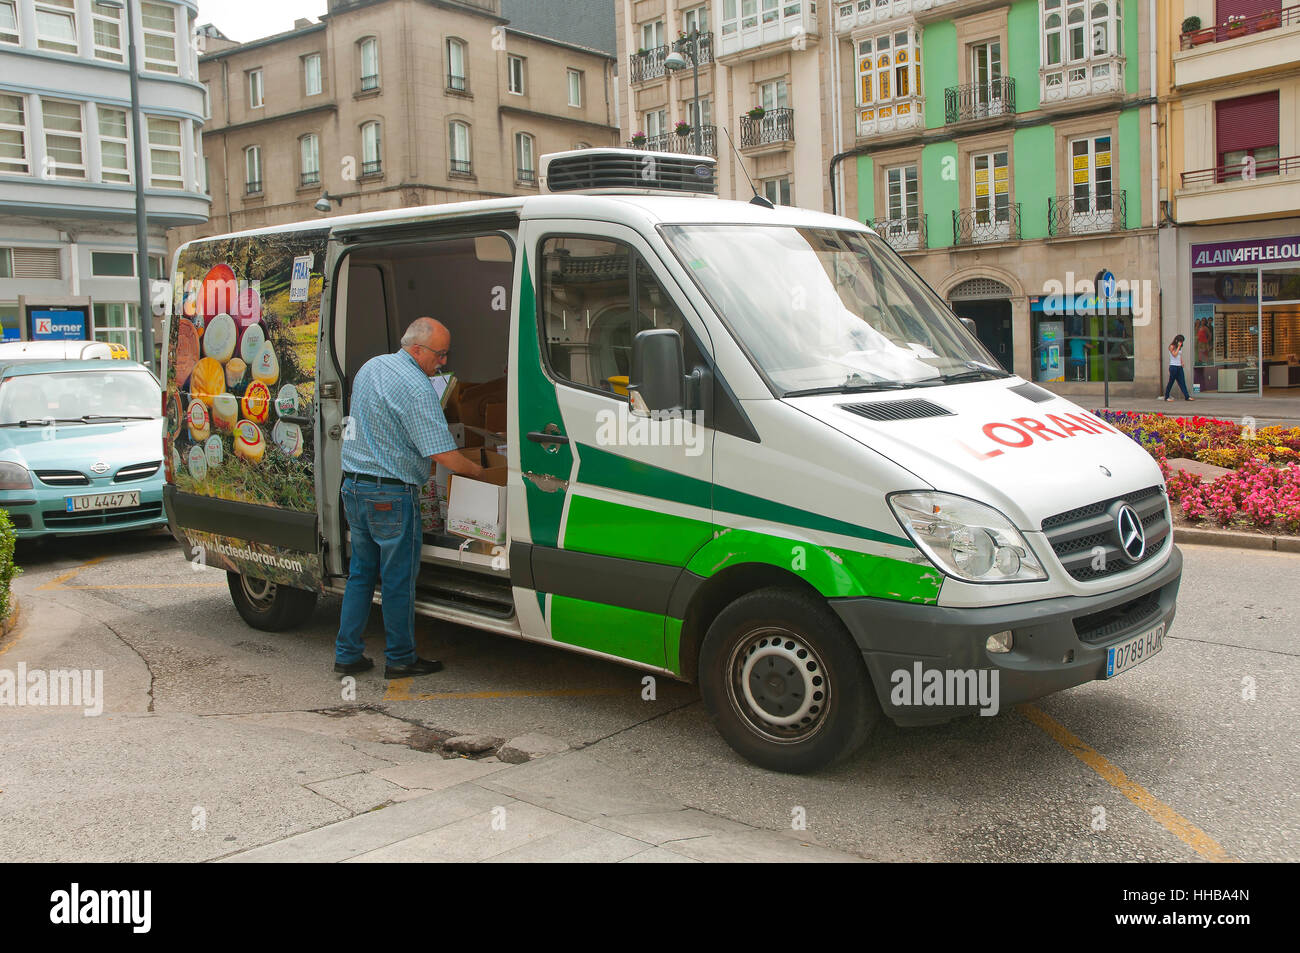 Delivery van, Lugo, Region of Galicia, Spain, Europe - Stock Image